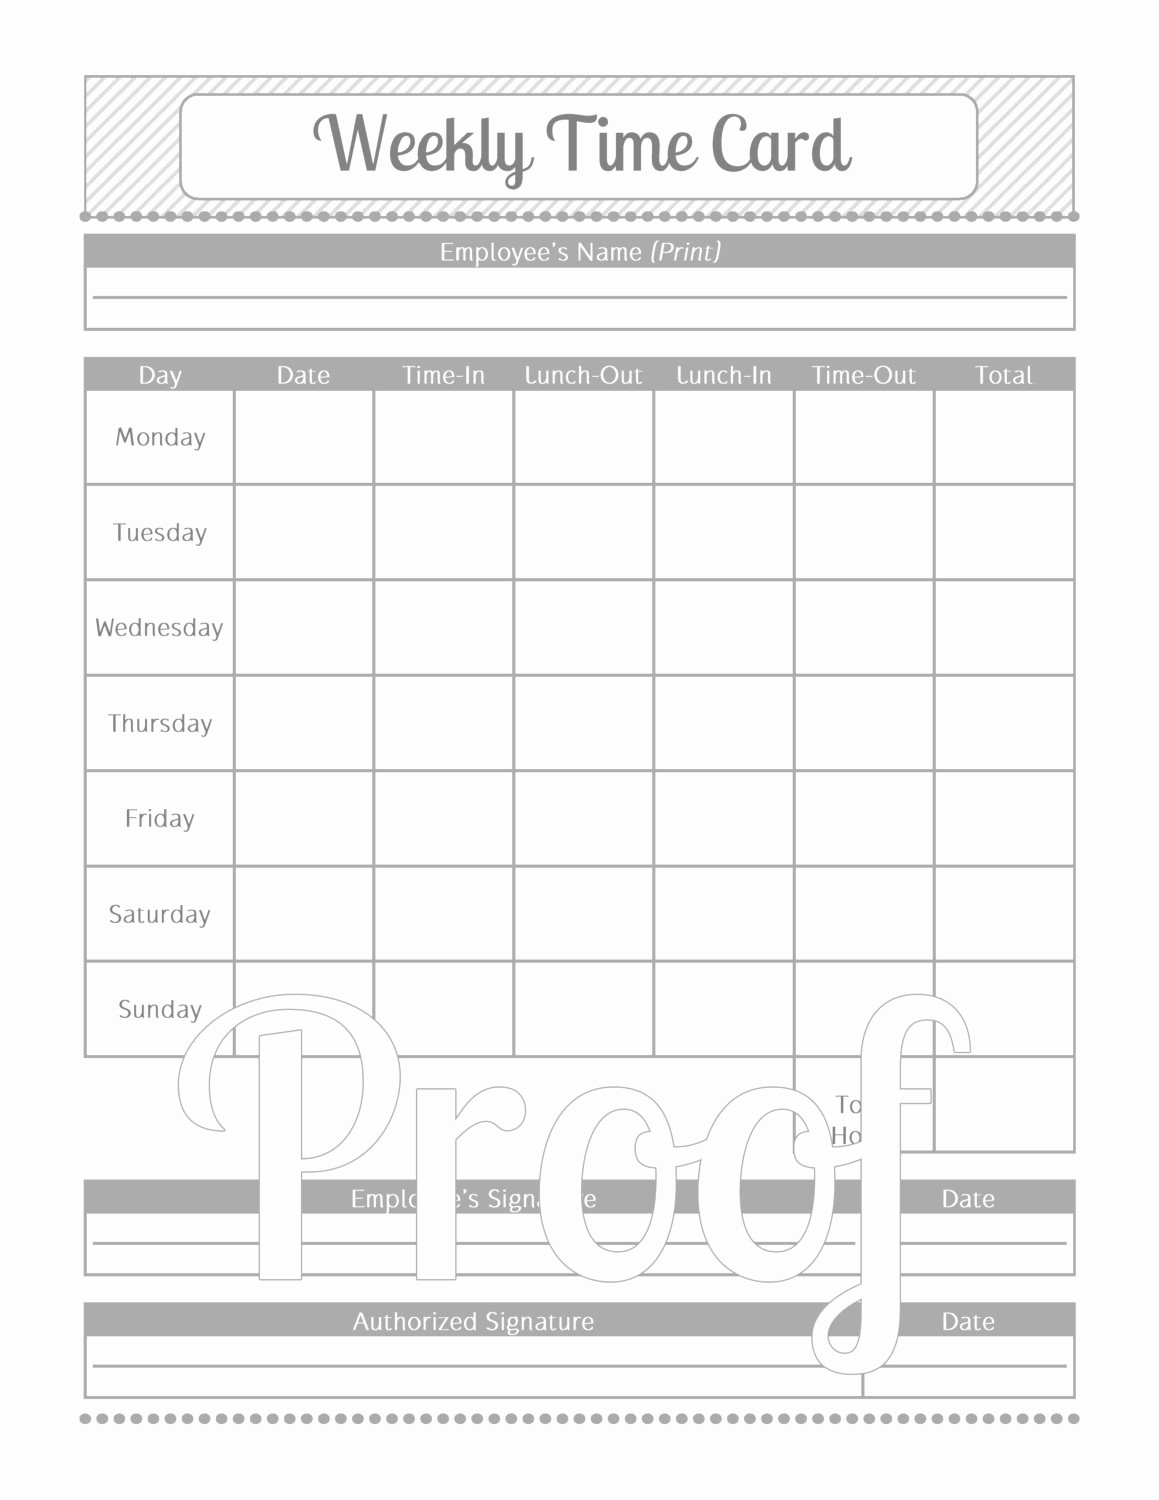 Sample Time Card for Employees Awesome Weekly Time Card Grey and White Instant by